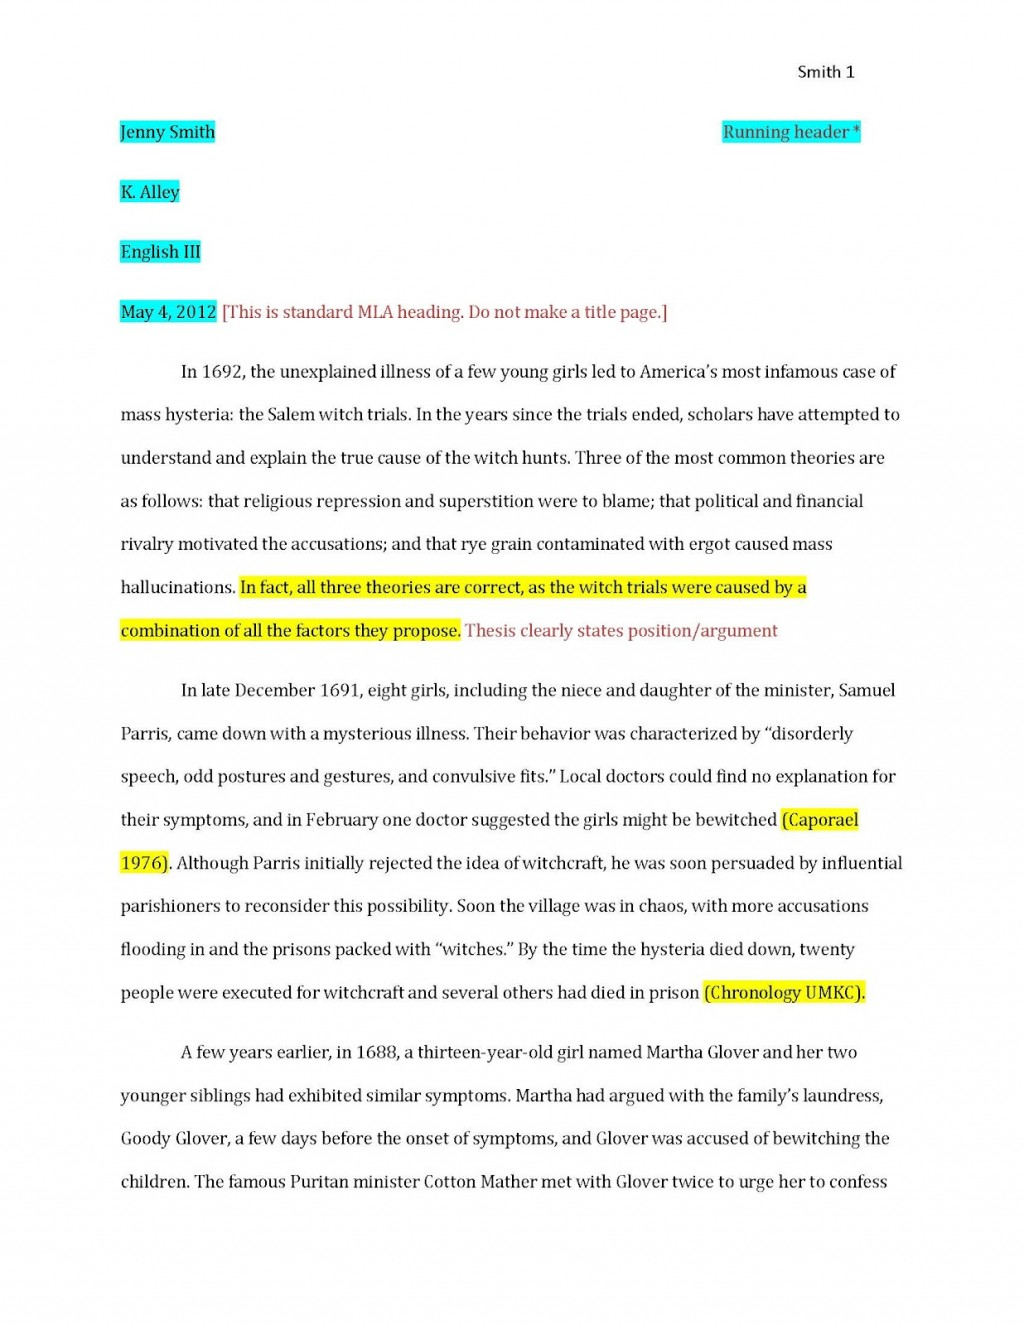 014 Examplepaper Page 1 How To Quote Book In An Essay Formidable A Cite Mla Using Title Large